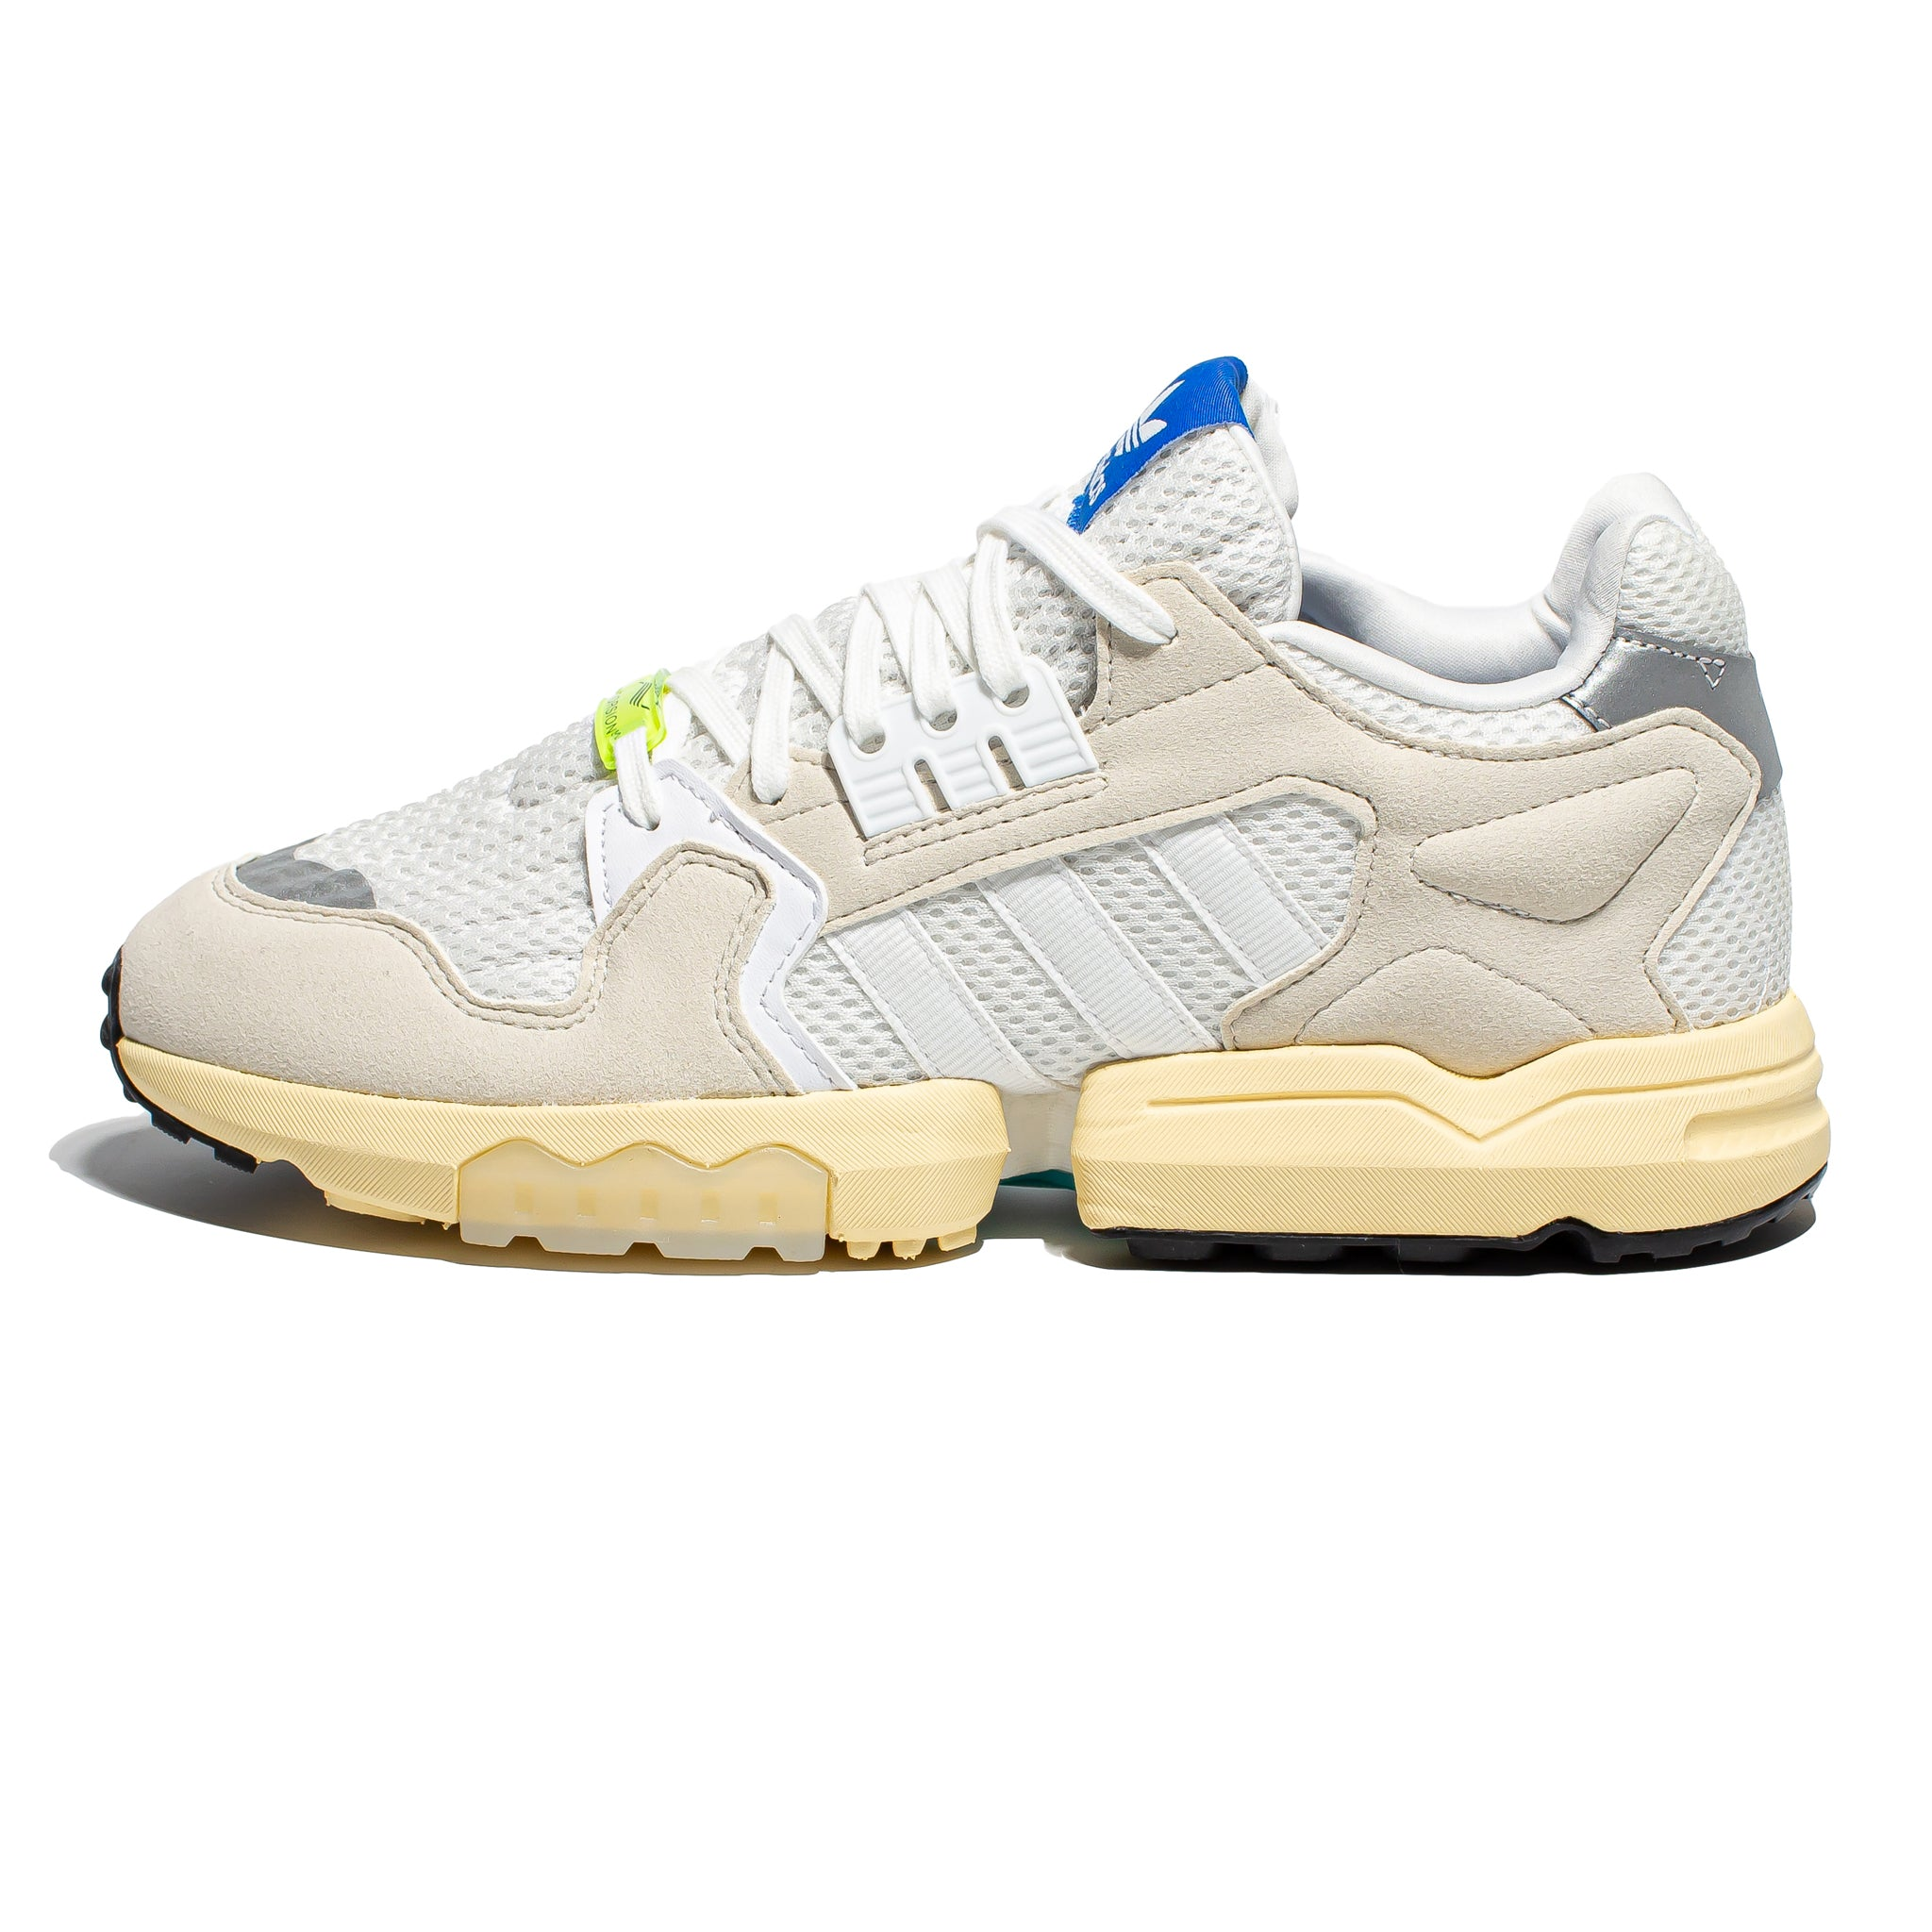 Adidas ZX Torsion Cloud White/Raw White